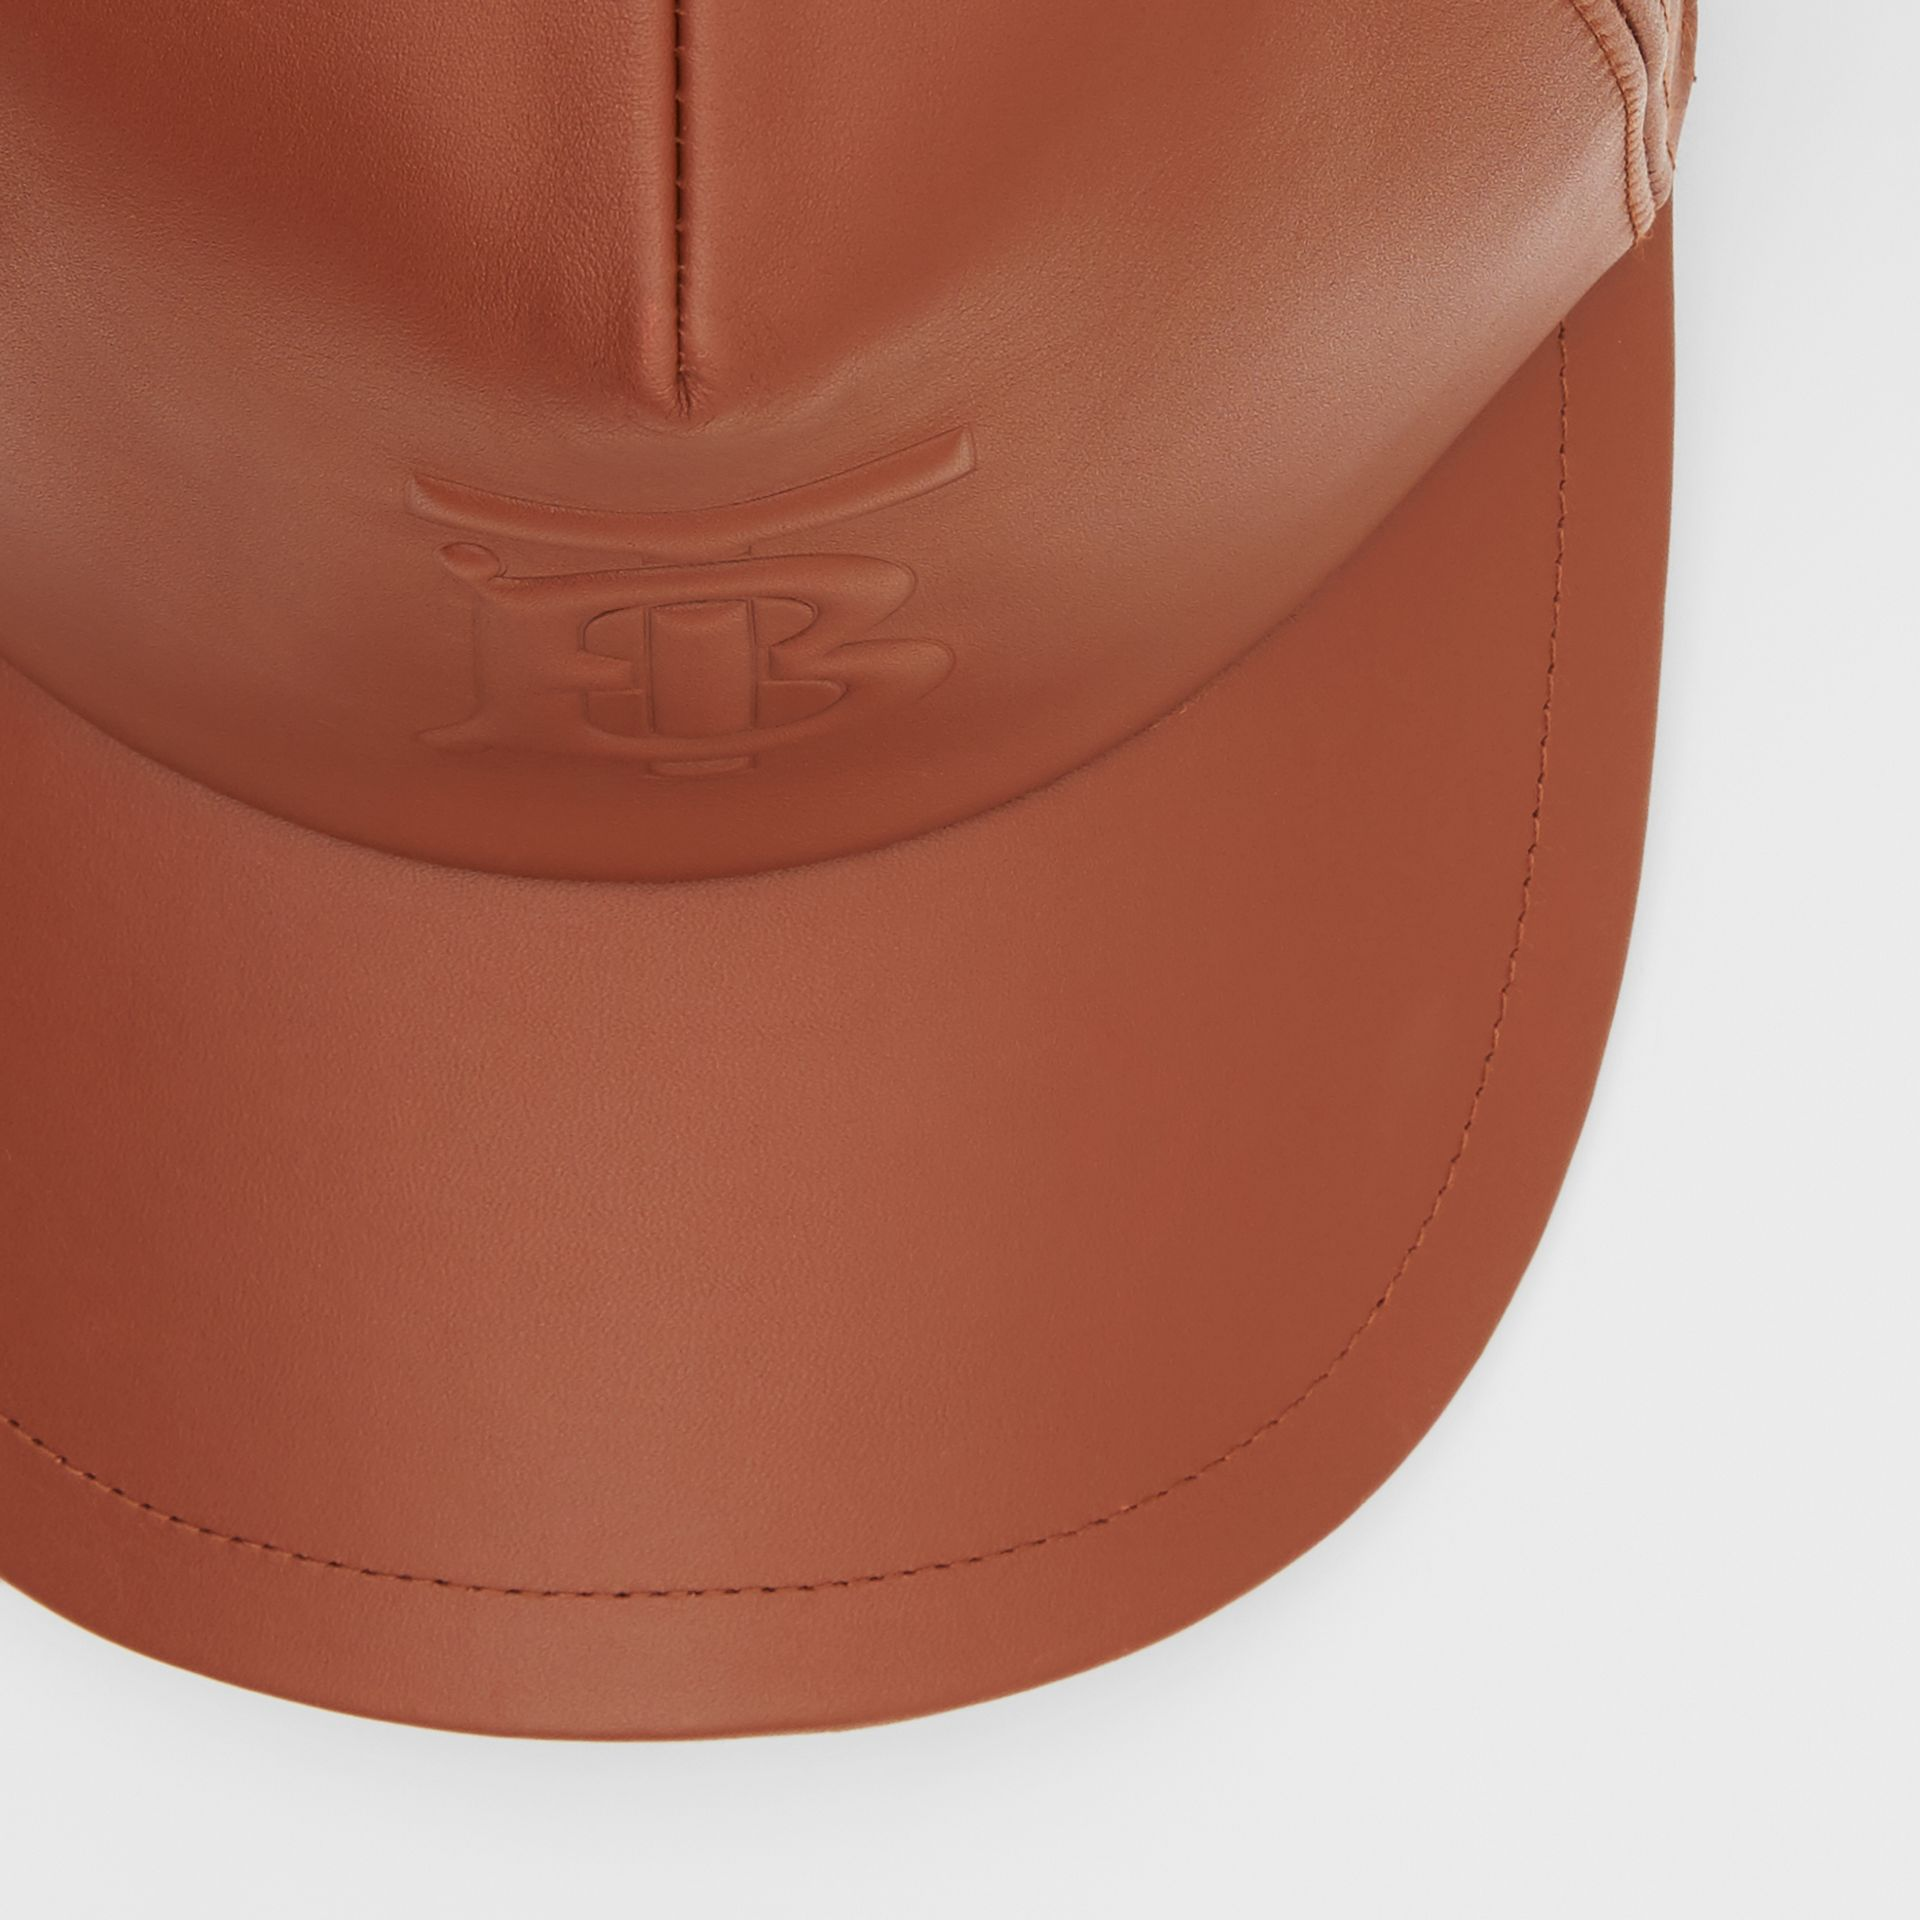 Monogram Motif Leather Baseball Cap in Tan | Burberry - gallery image 1